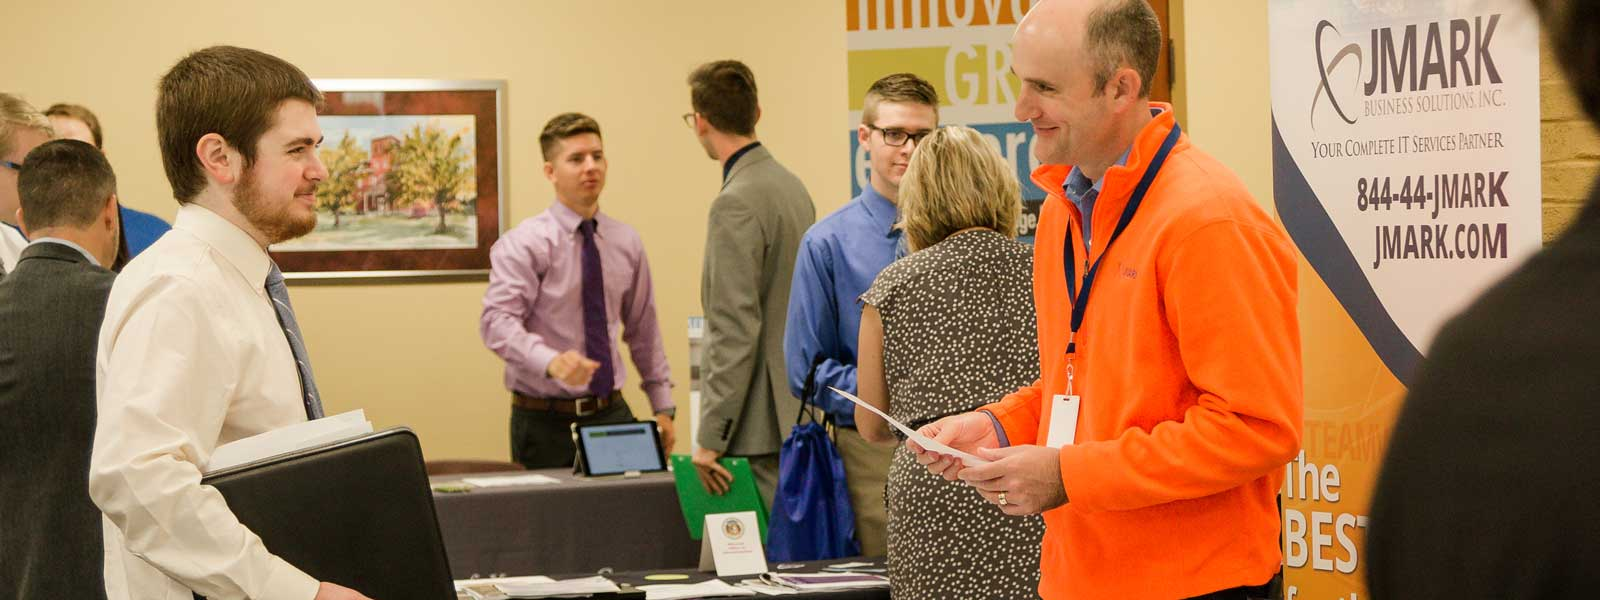 students interact with professionals at career fair